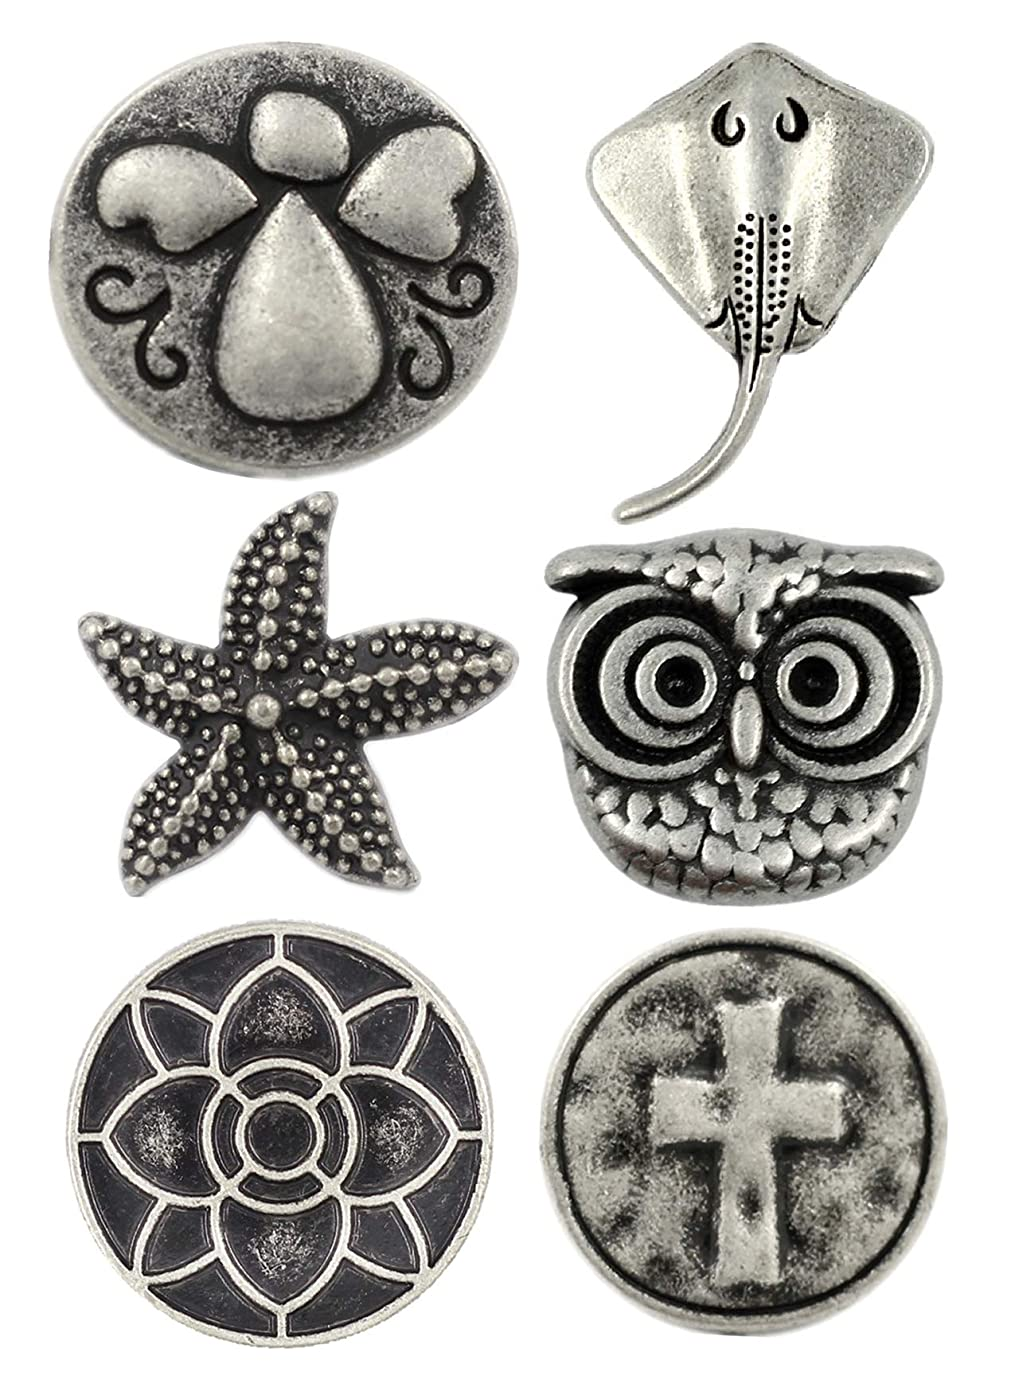 Bezelry 12 Pieces Mixed Craft Making Antique Silver Color Metal Shank Buttons. 2 Pieces per Style.